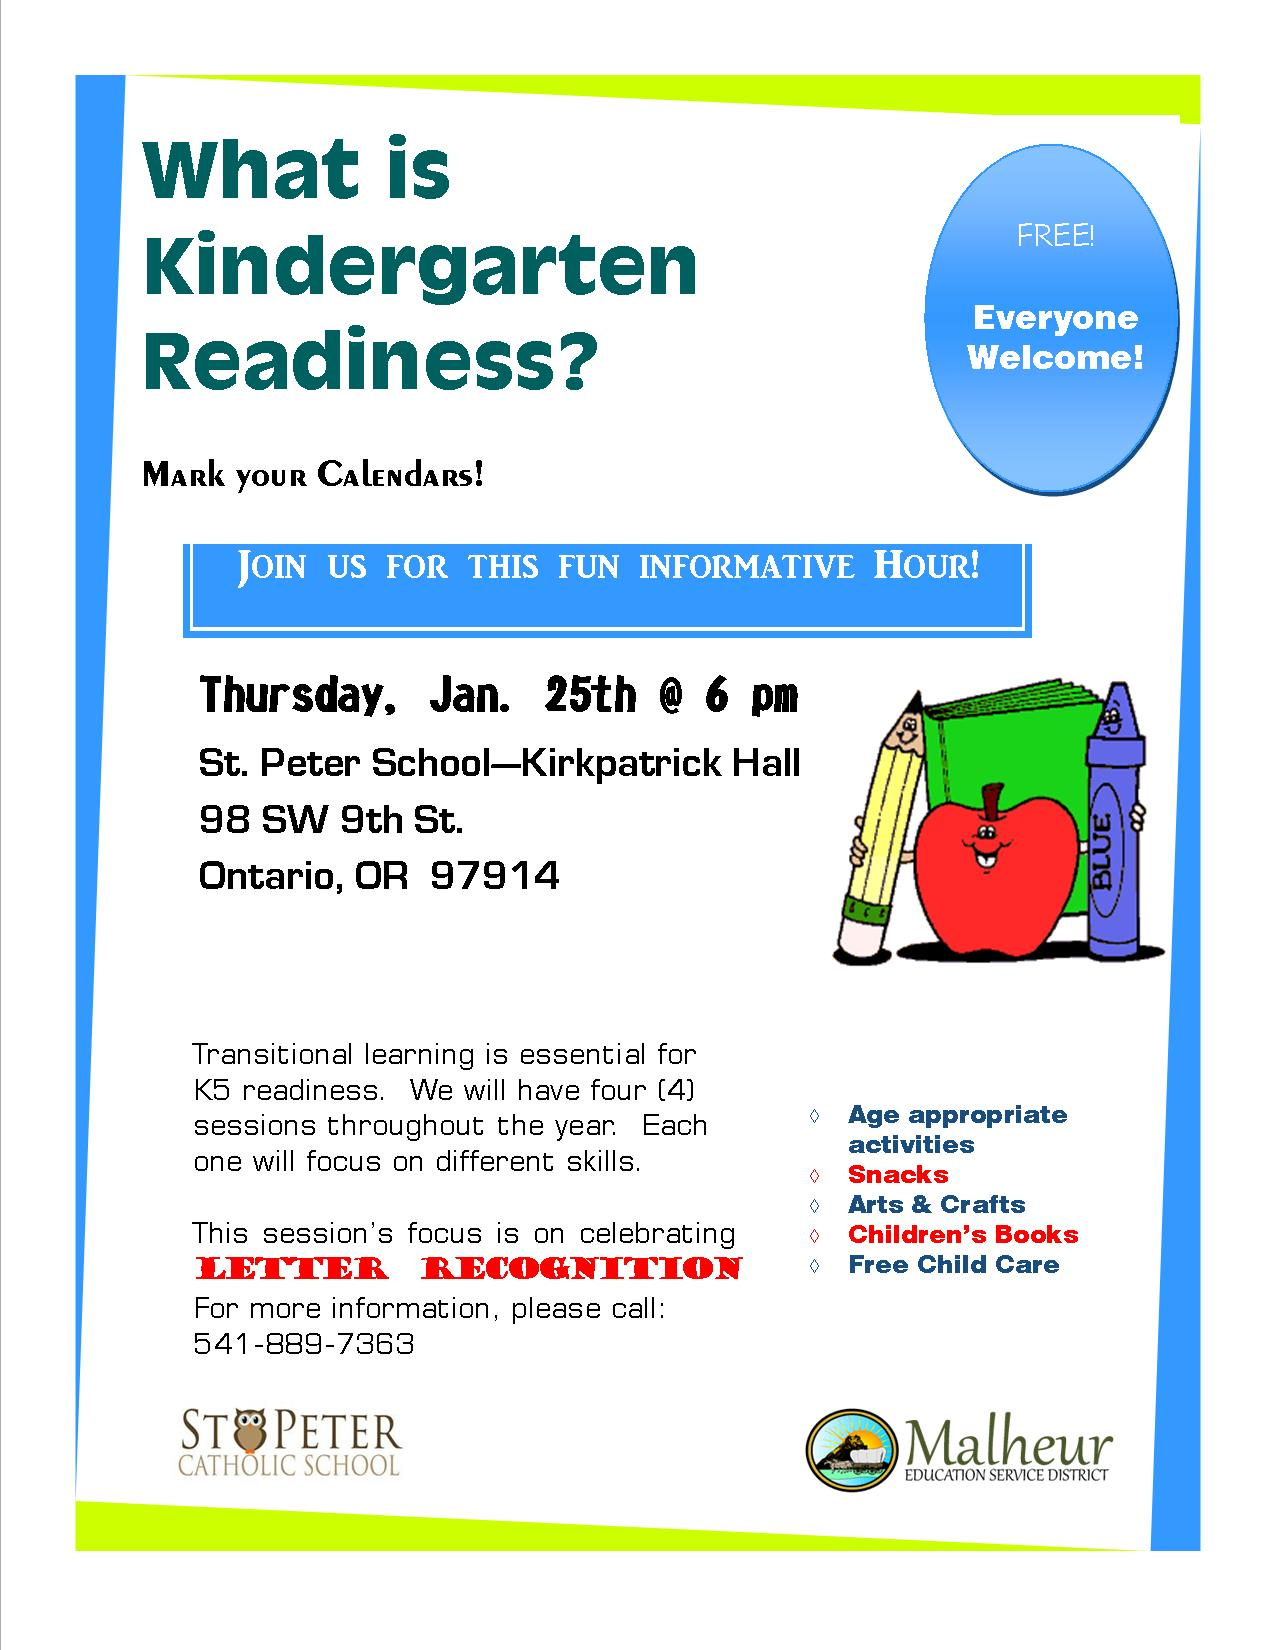 Kindergarten Readiness Calendar : Kindergarten readiness program st peter catholic school